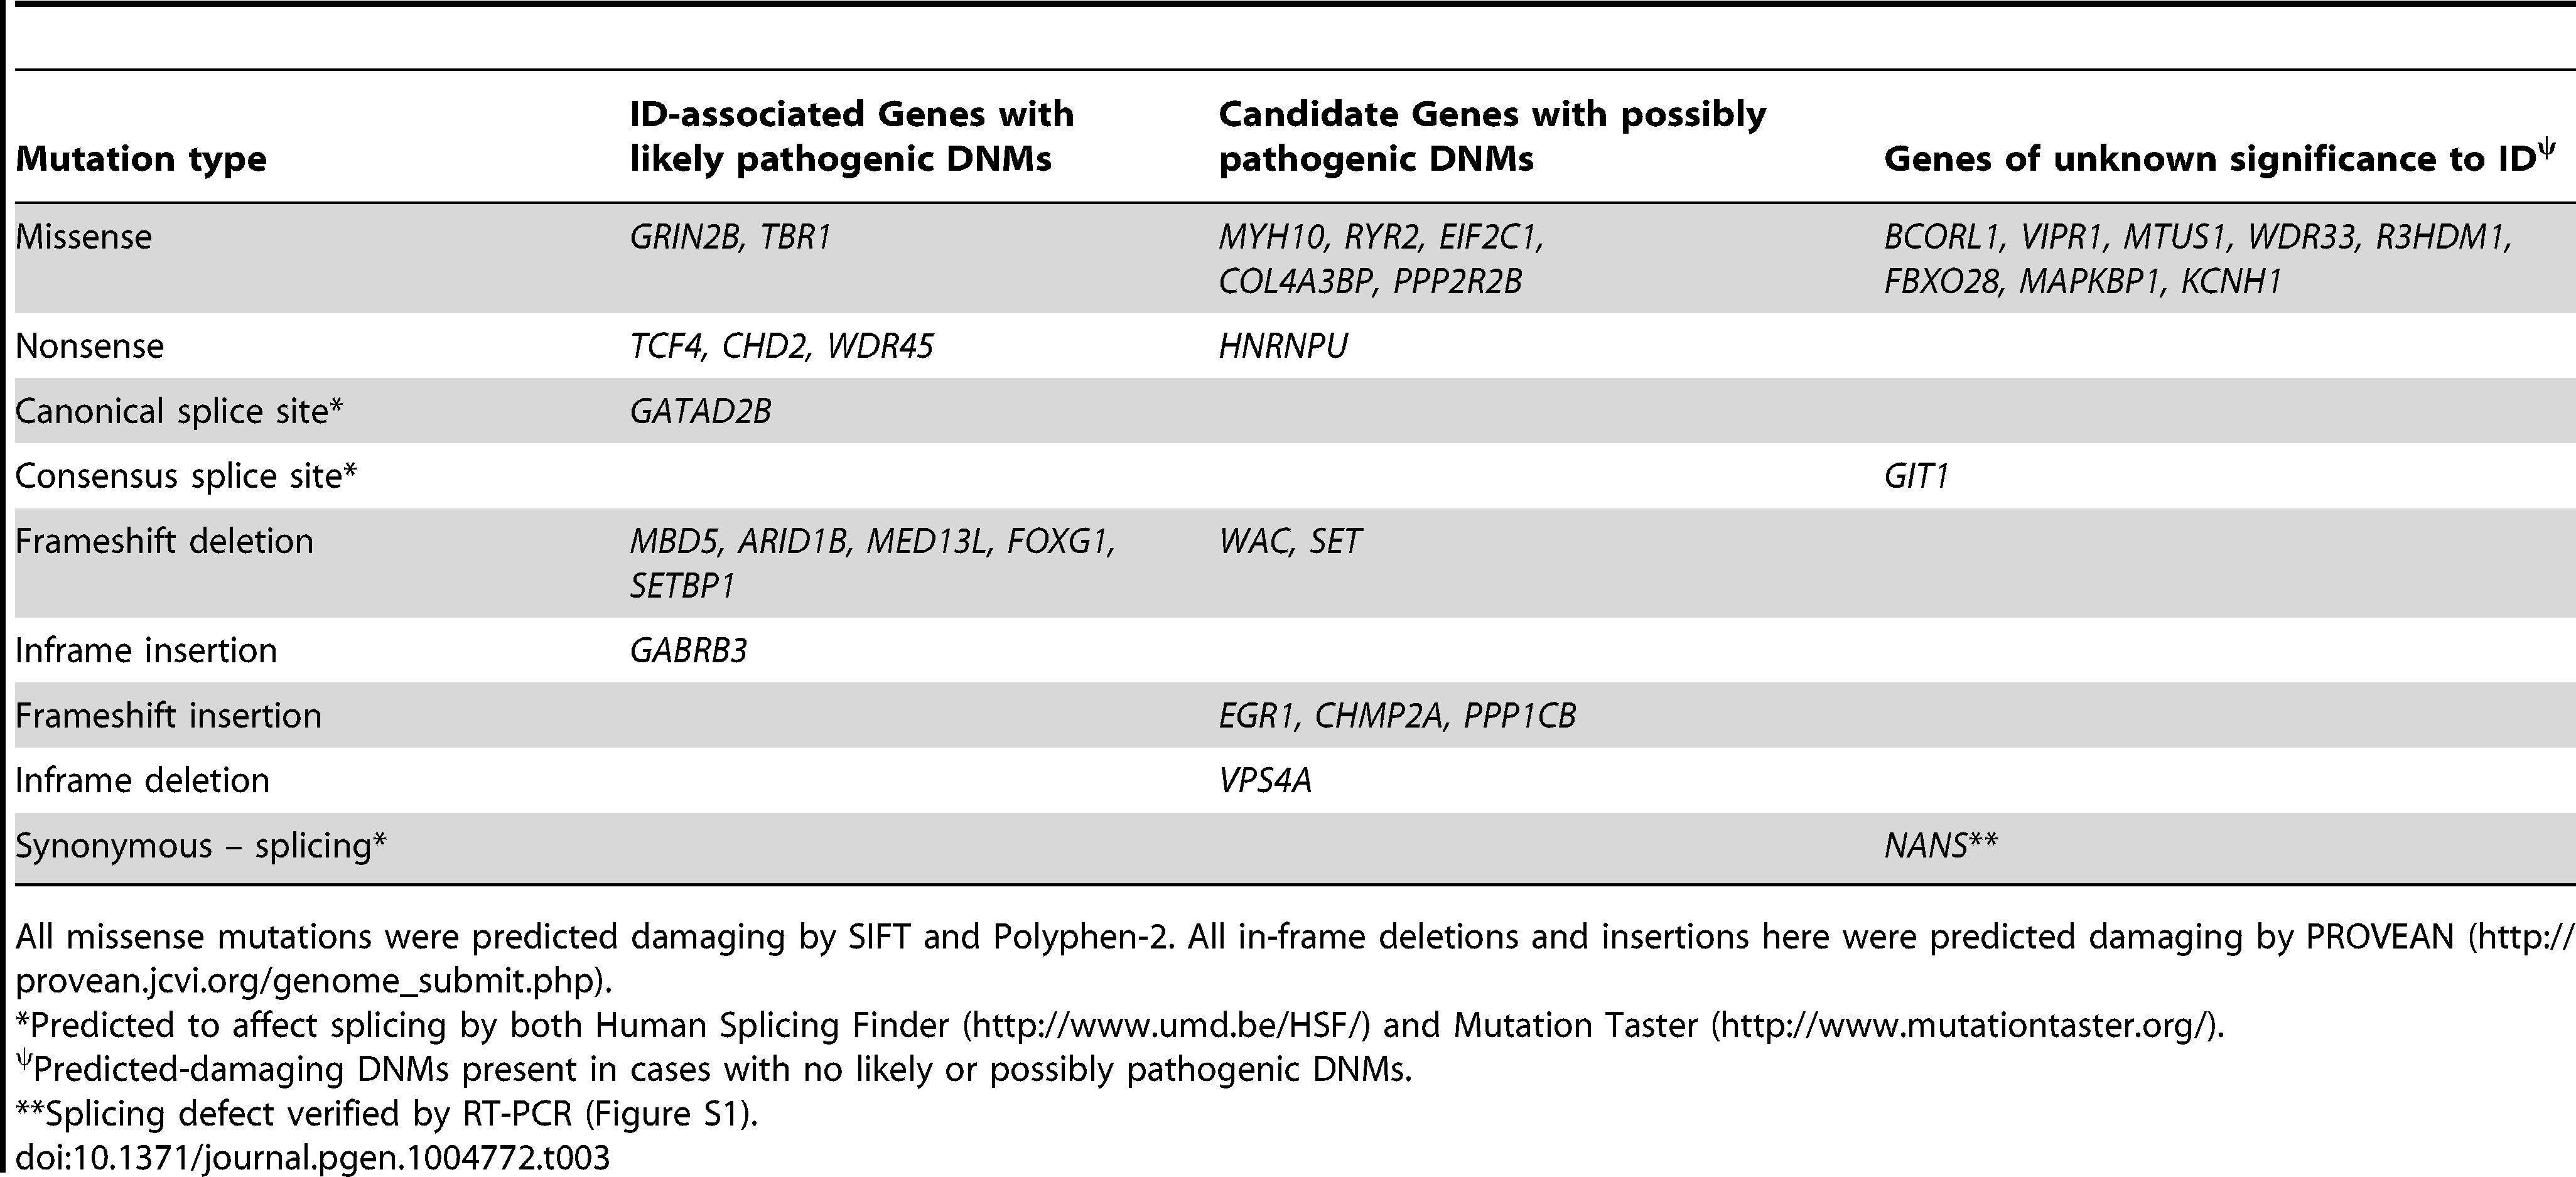 Genes affected by predicted-damaging DNMs identified herein and their implication in ID.